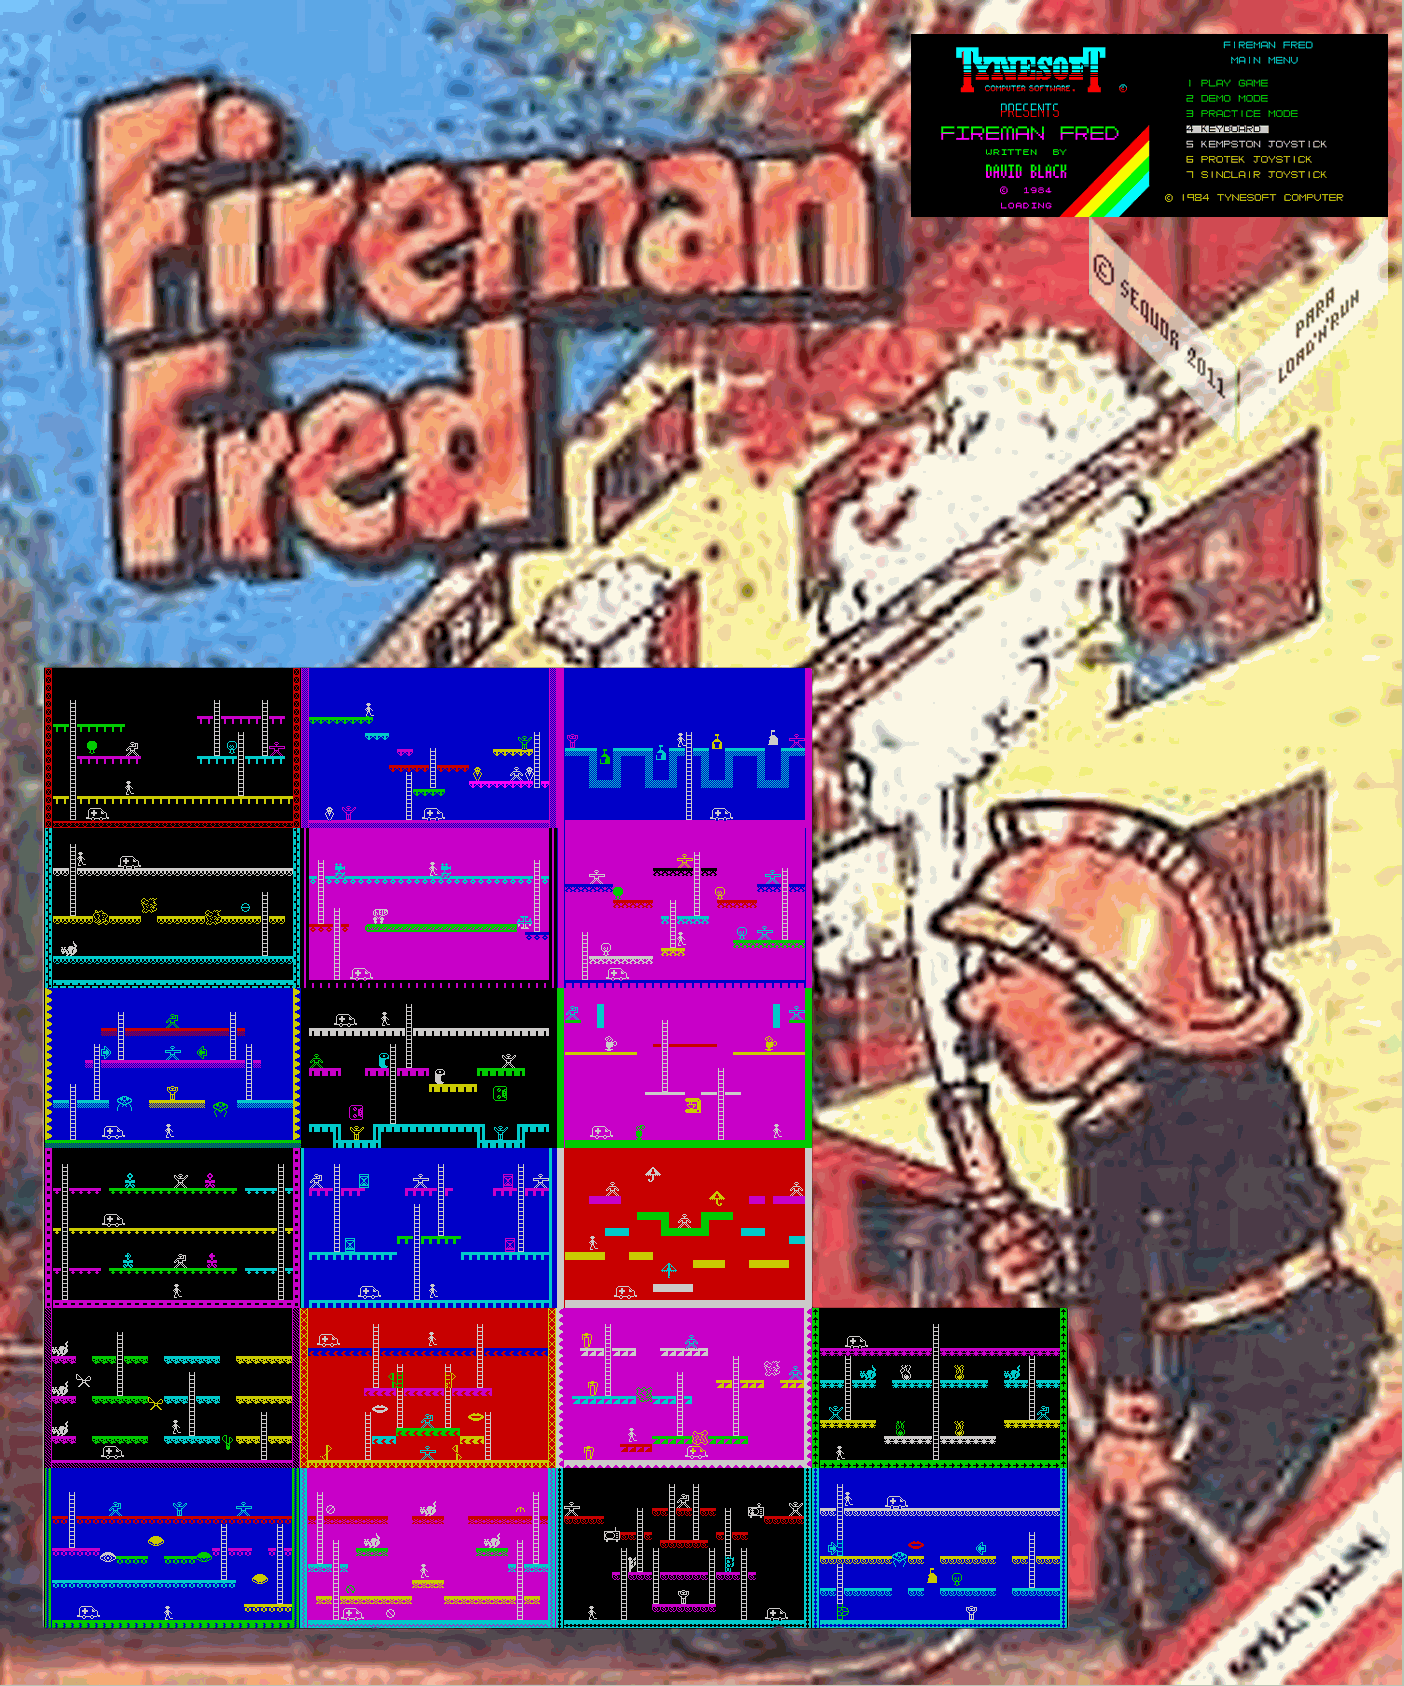 Fireman Fred - The Map